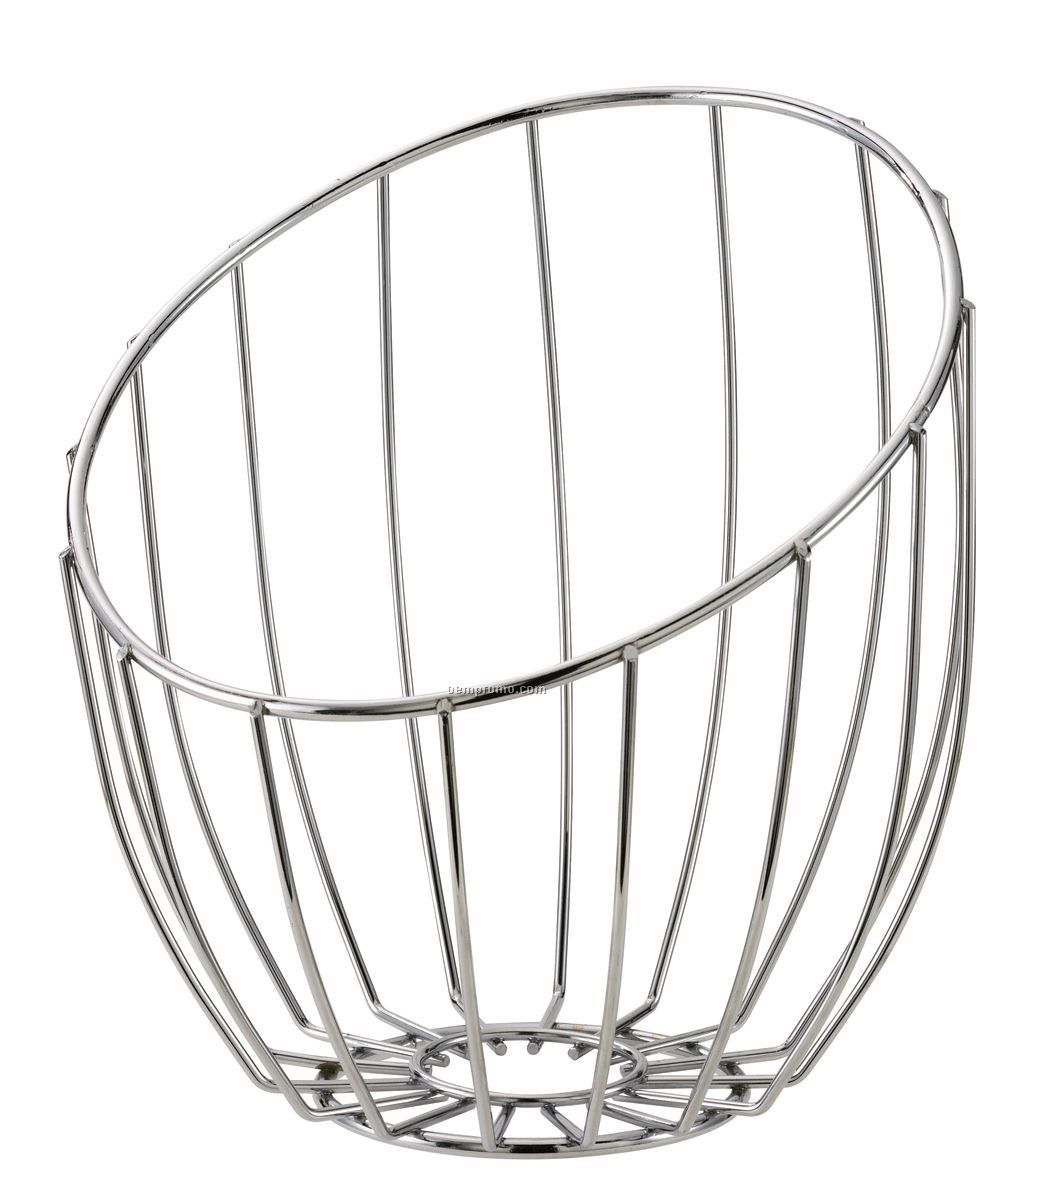 Chromed Metal Stainless Steel Wire Tall Bread Basket China Wholesale Chromed Metal Stainless